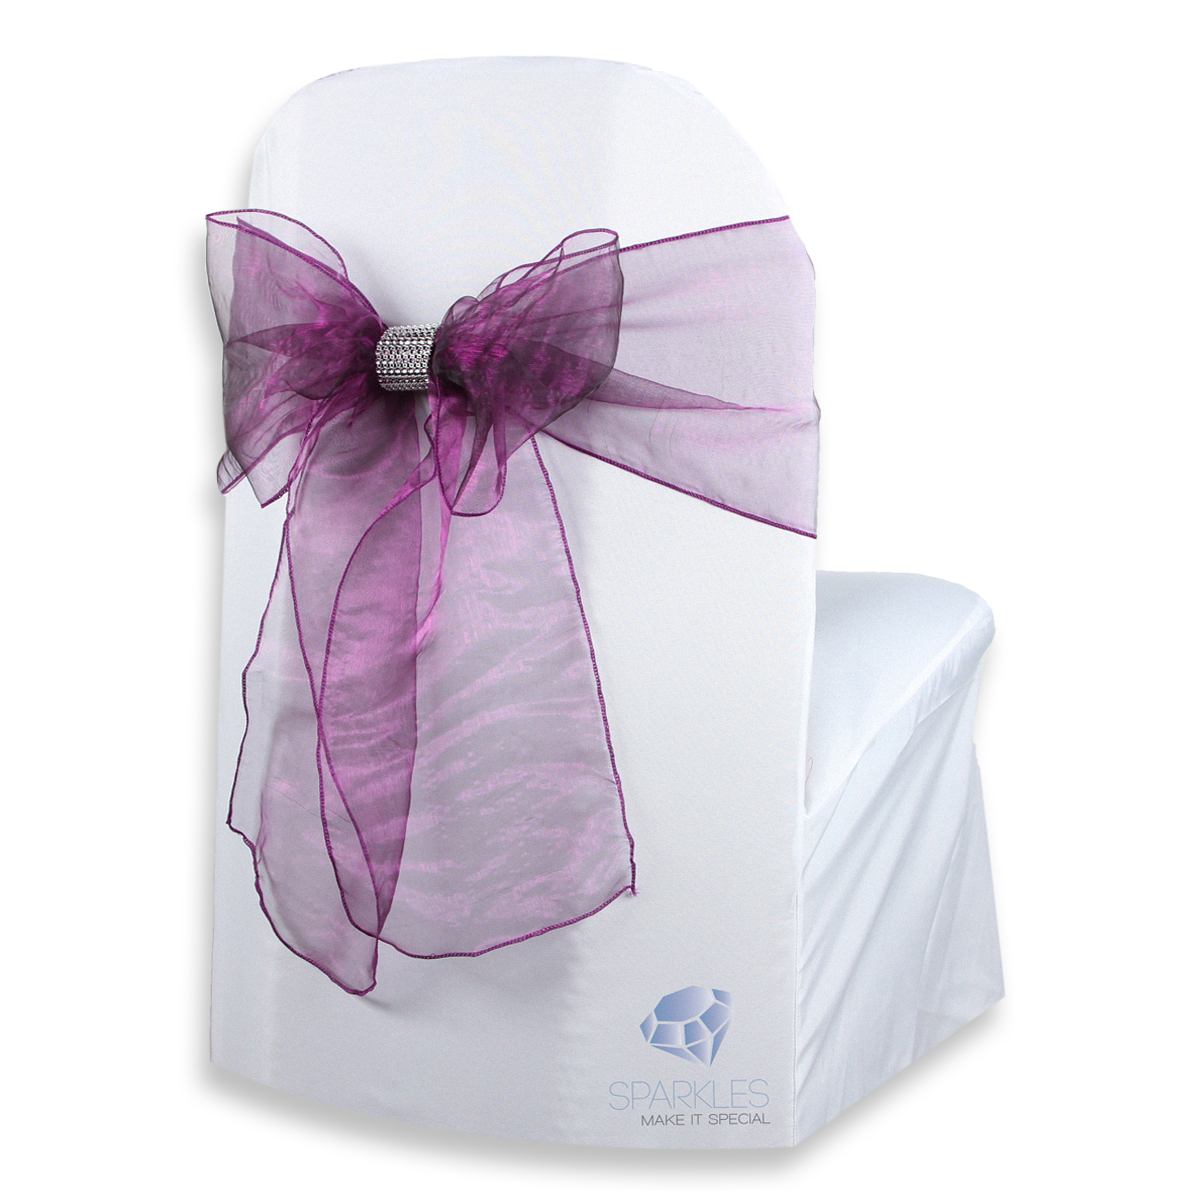 chair covers with bows attached sewing machine 50 pcs organza cover bow sash 108 quotx8 quot plum purple